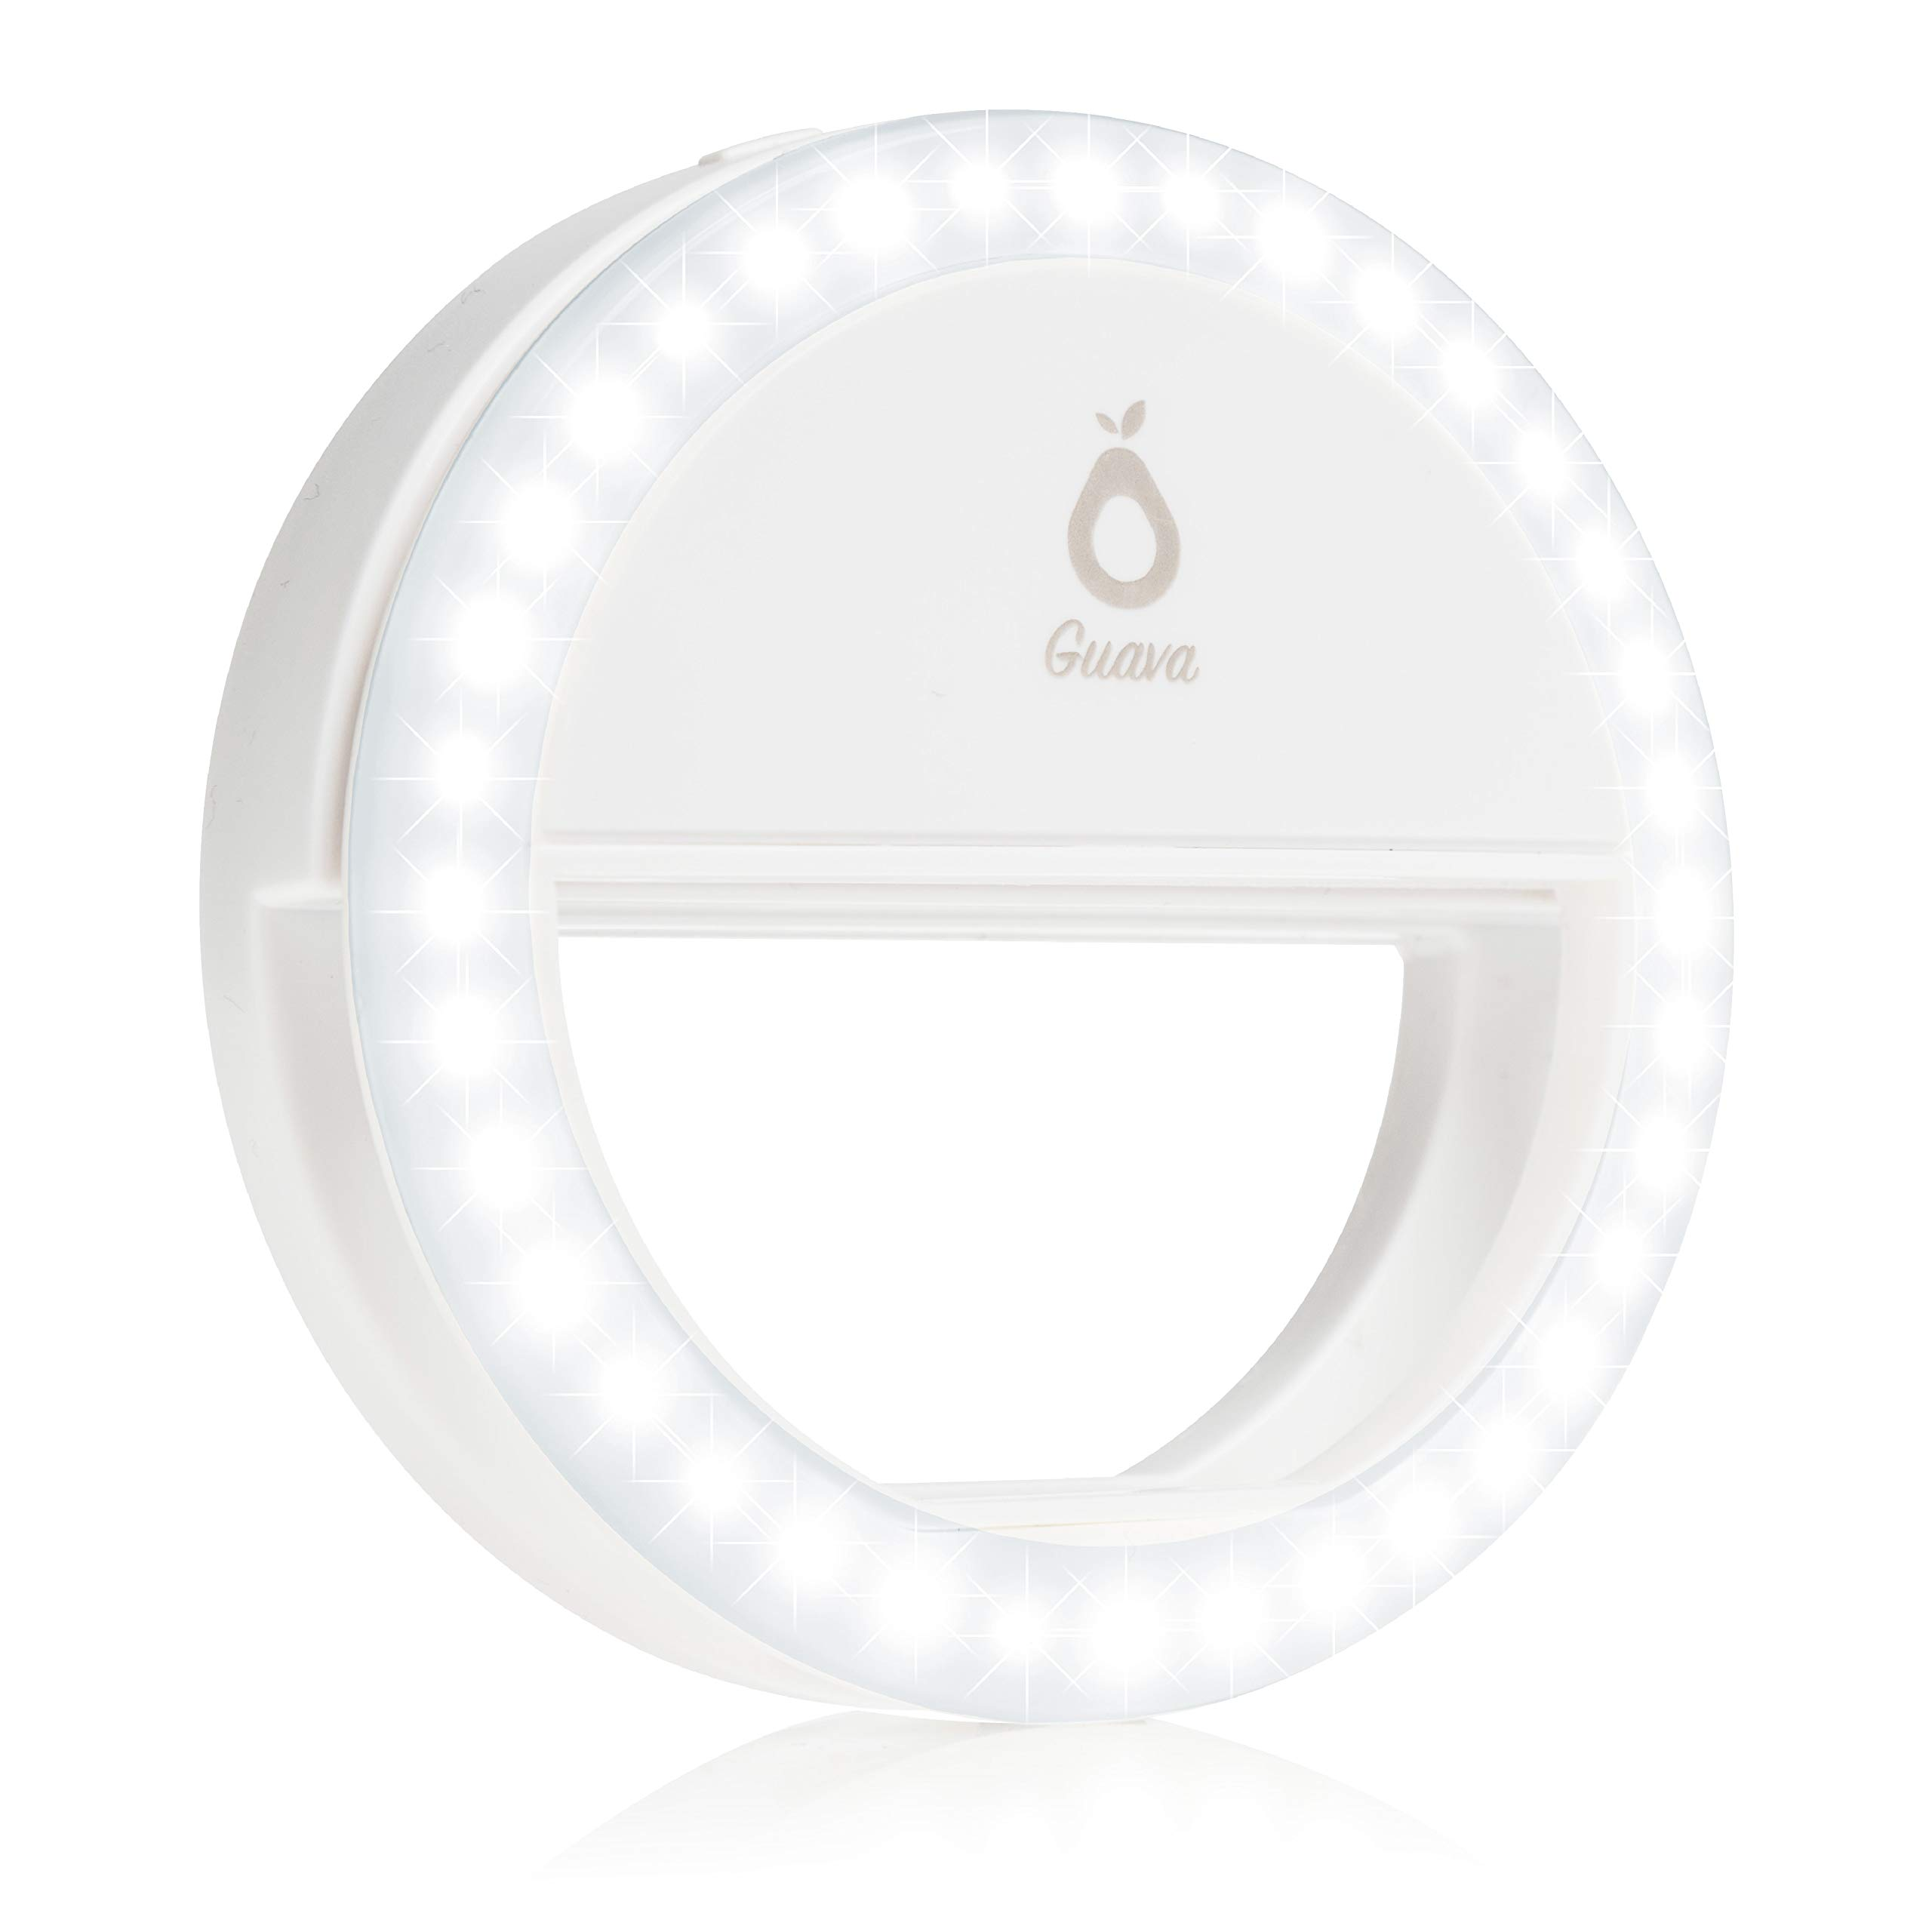 Selfie Ring Light with Rechargeable Battery - Adjustable Brightness with 36 LED - Portable Selfie Ring Circle for Selfies - Universal Phone Clip On - White by Guava